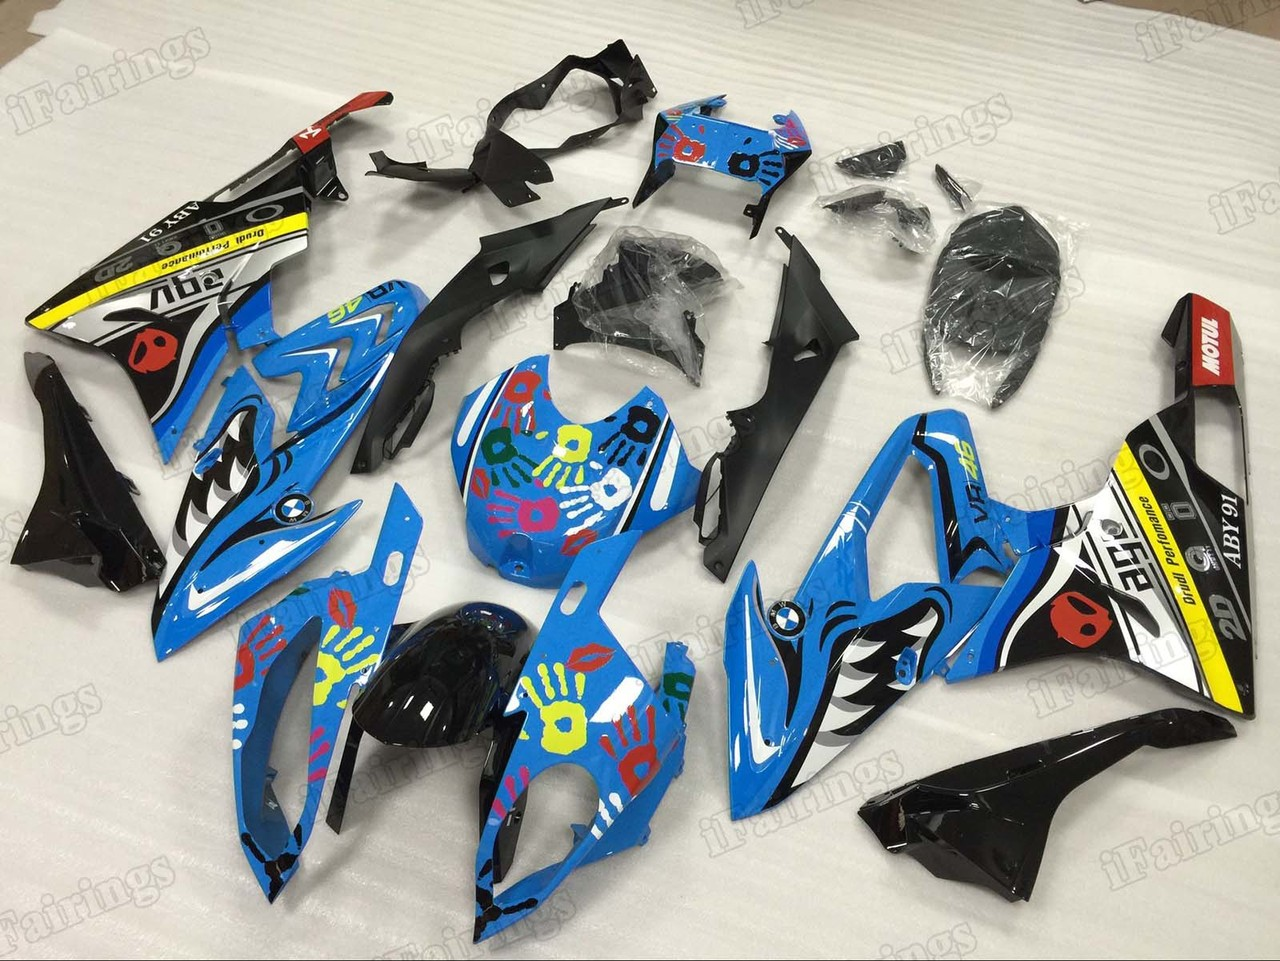 2015 2016 BMW S1000RR shark fairing kits.